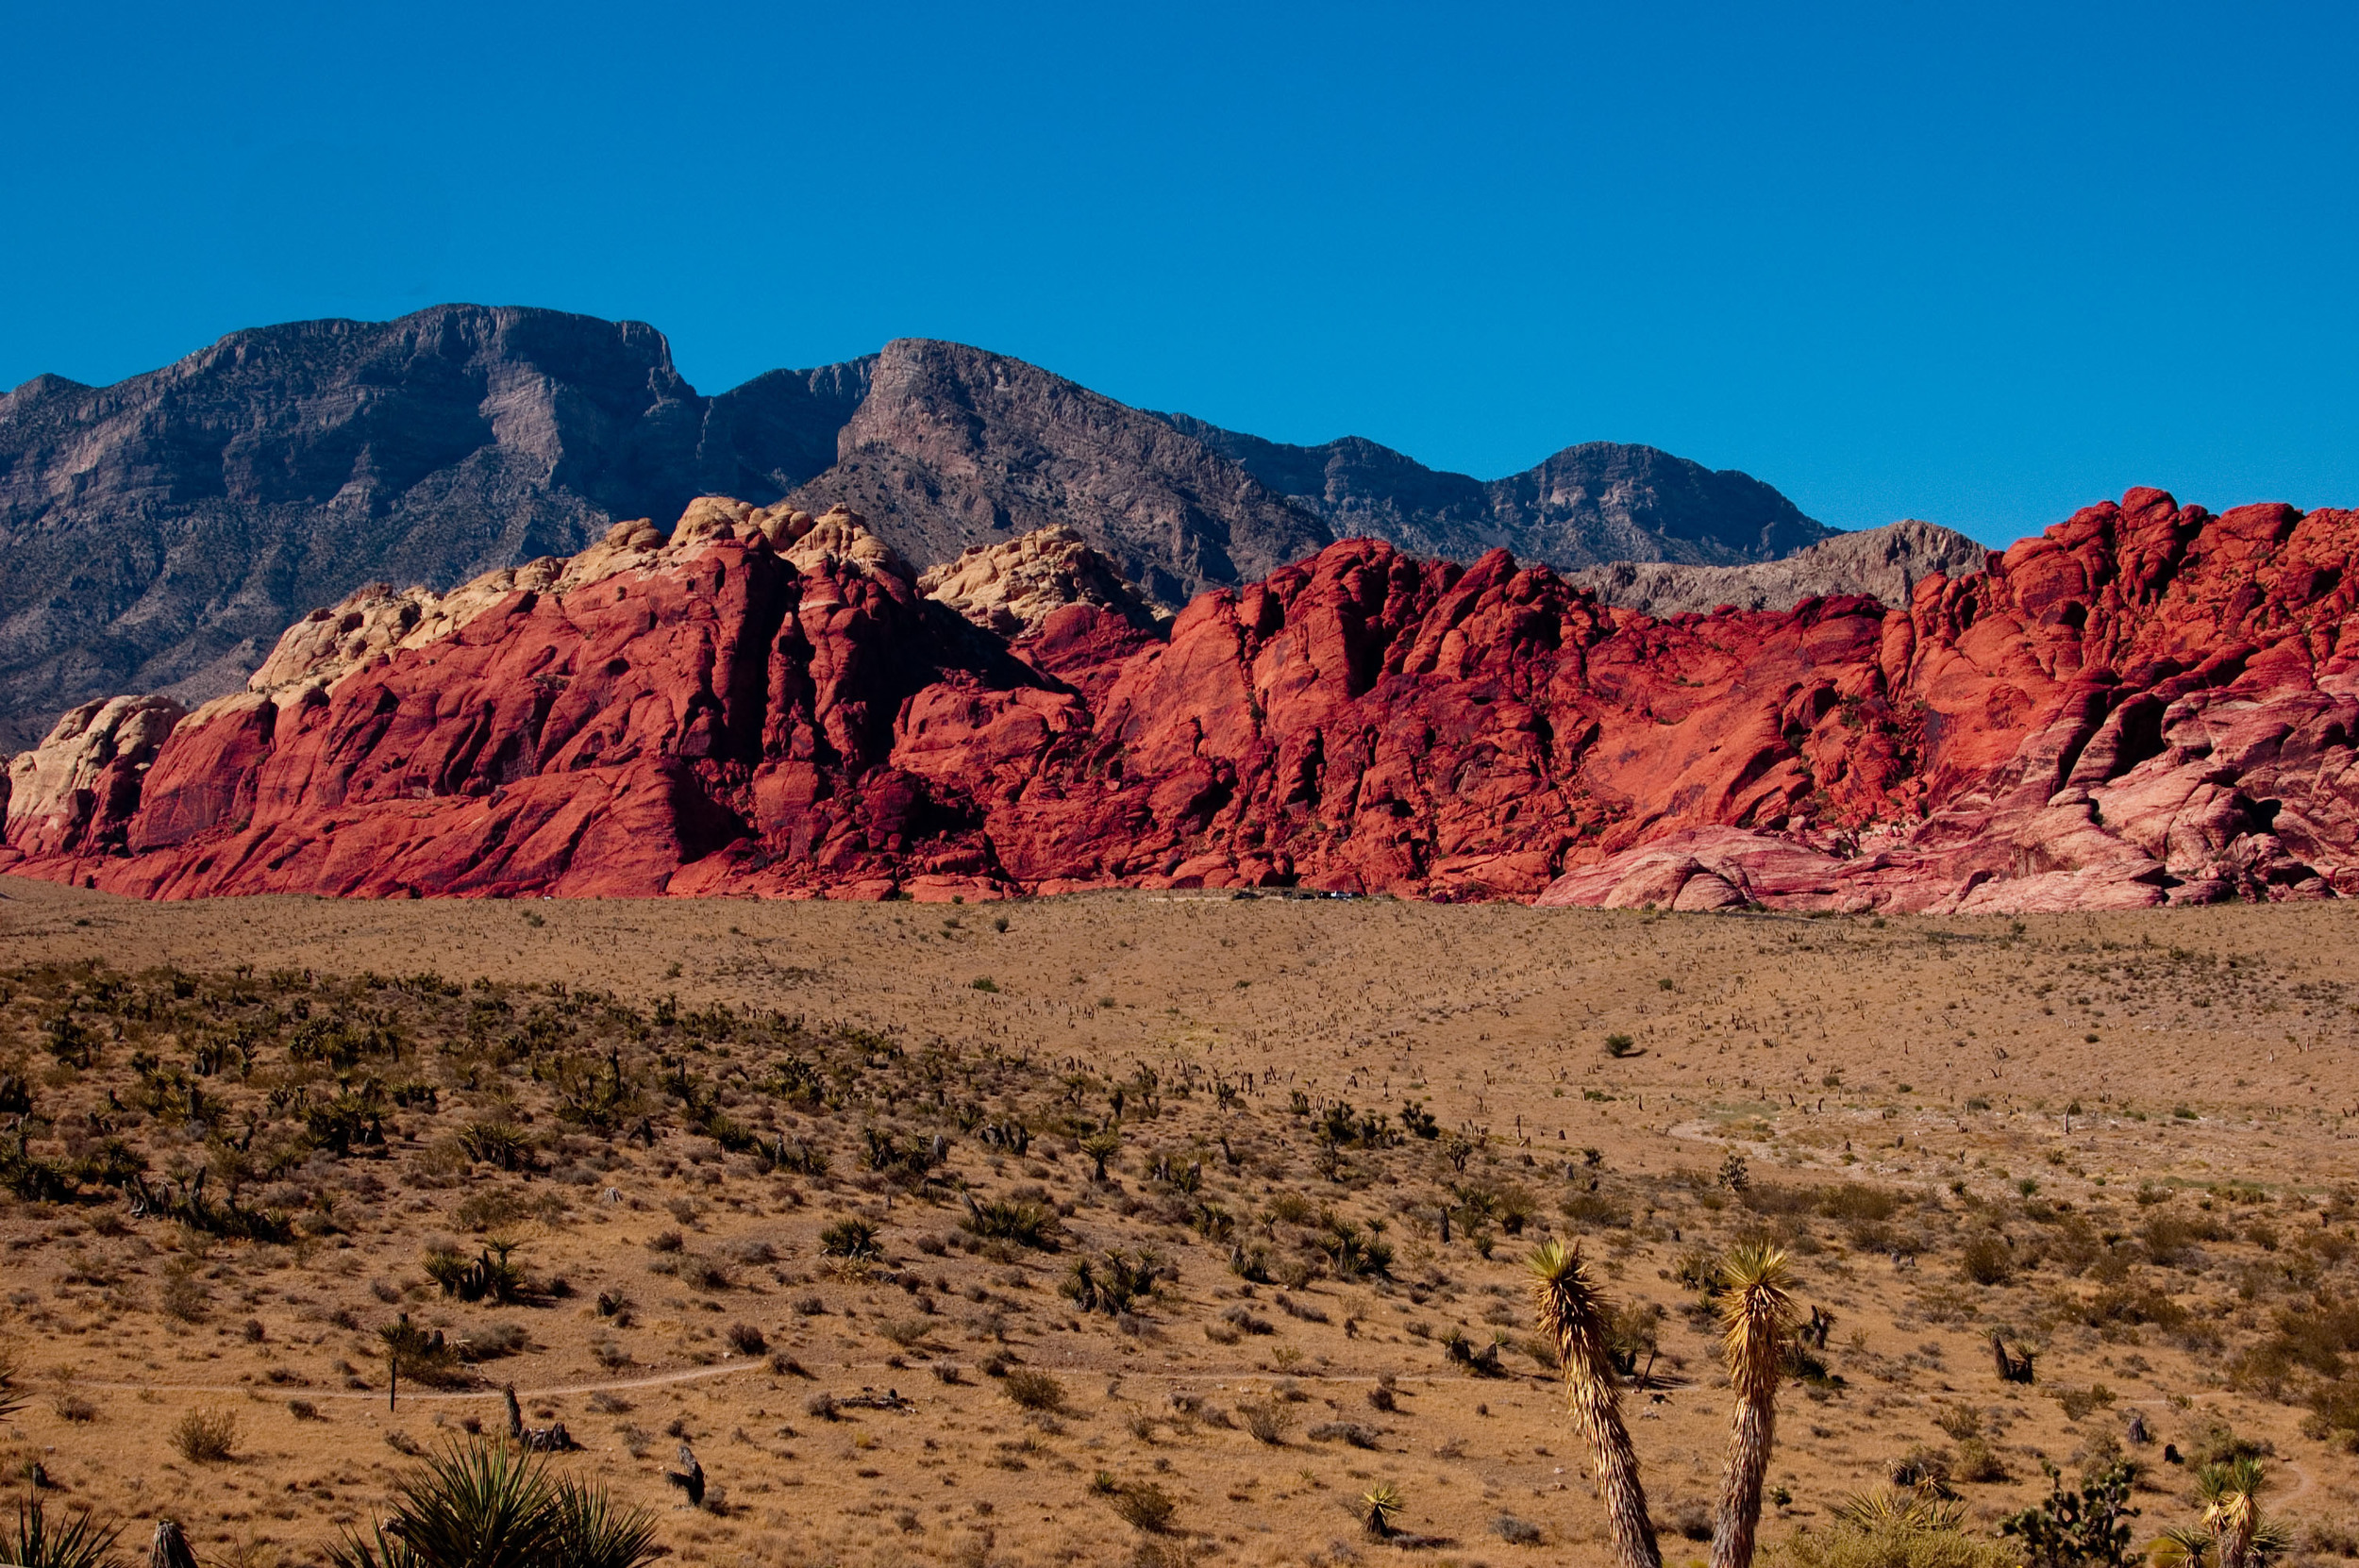 Red Rock Canyon Tours, found on Vegaster.